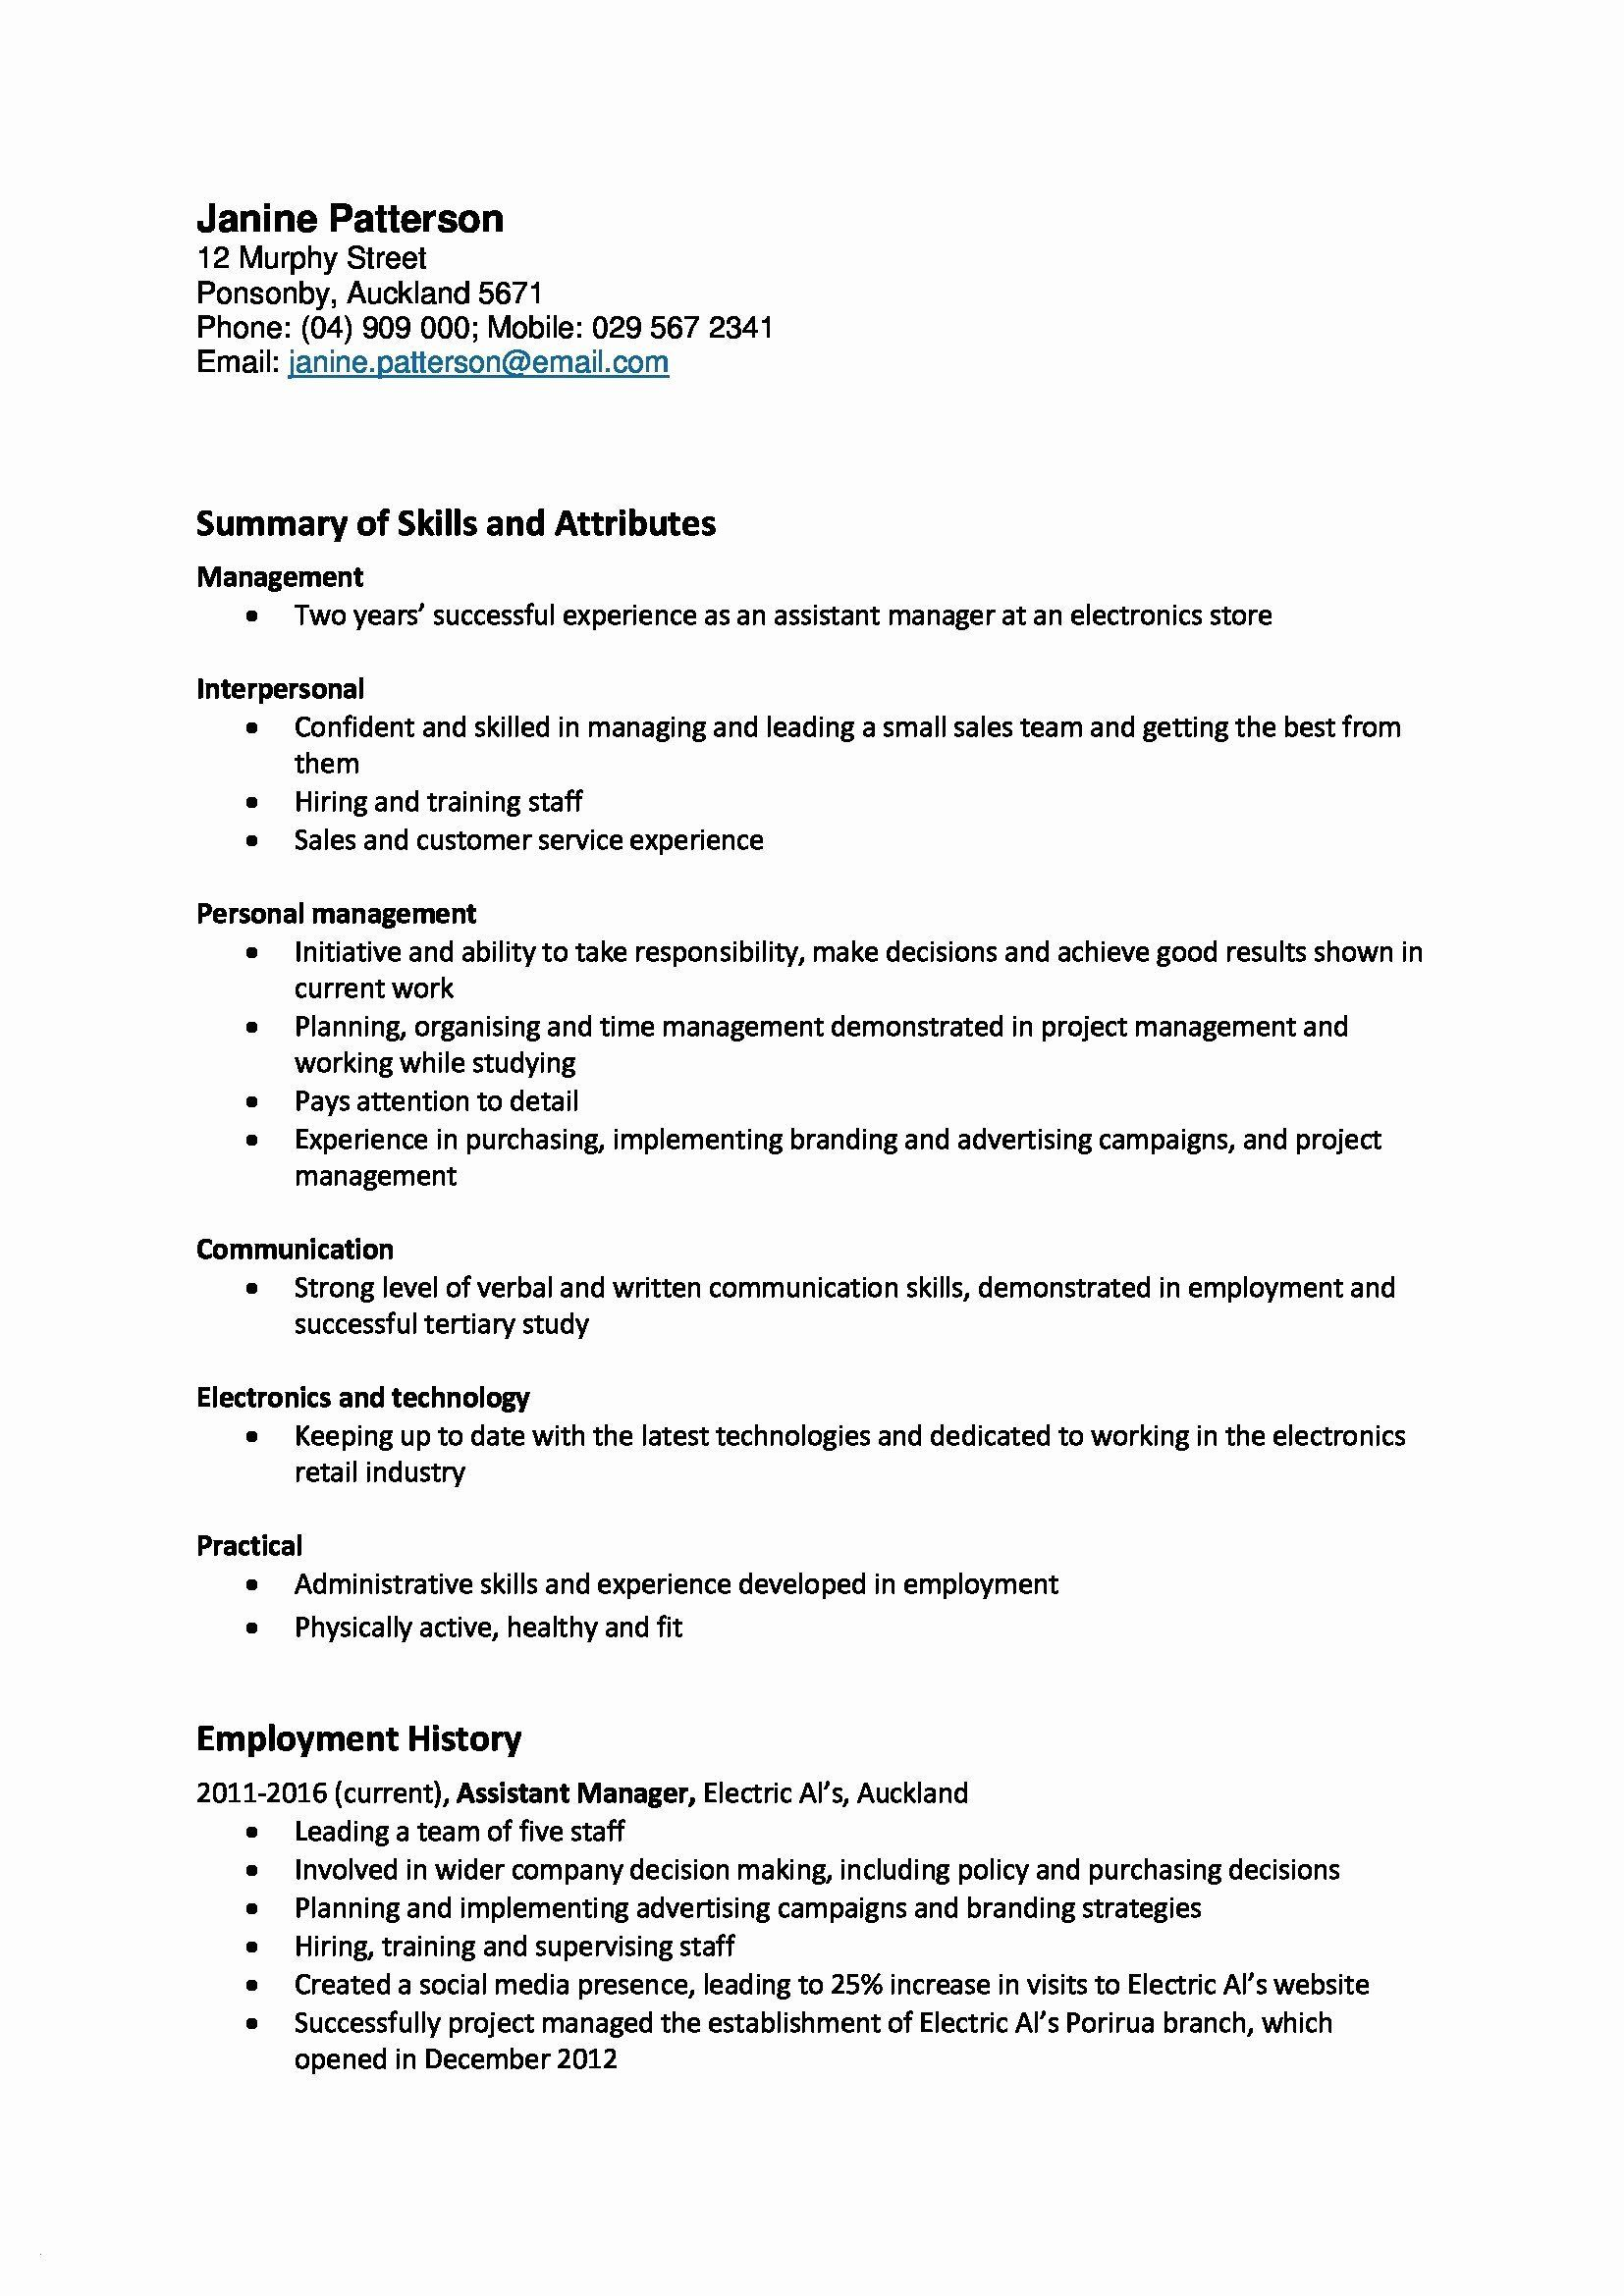 resume objectives for customer service best objective skills examples barista fake awards Resume Barista Objective Resume Examples